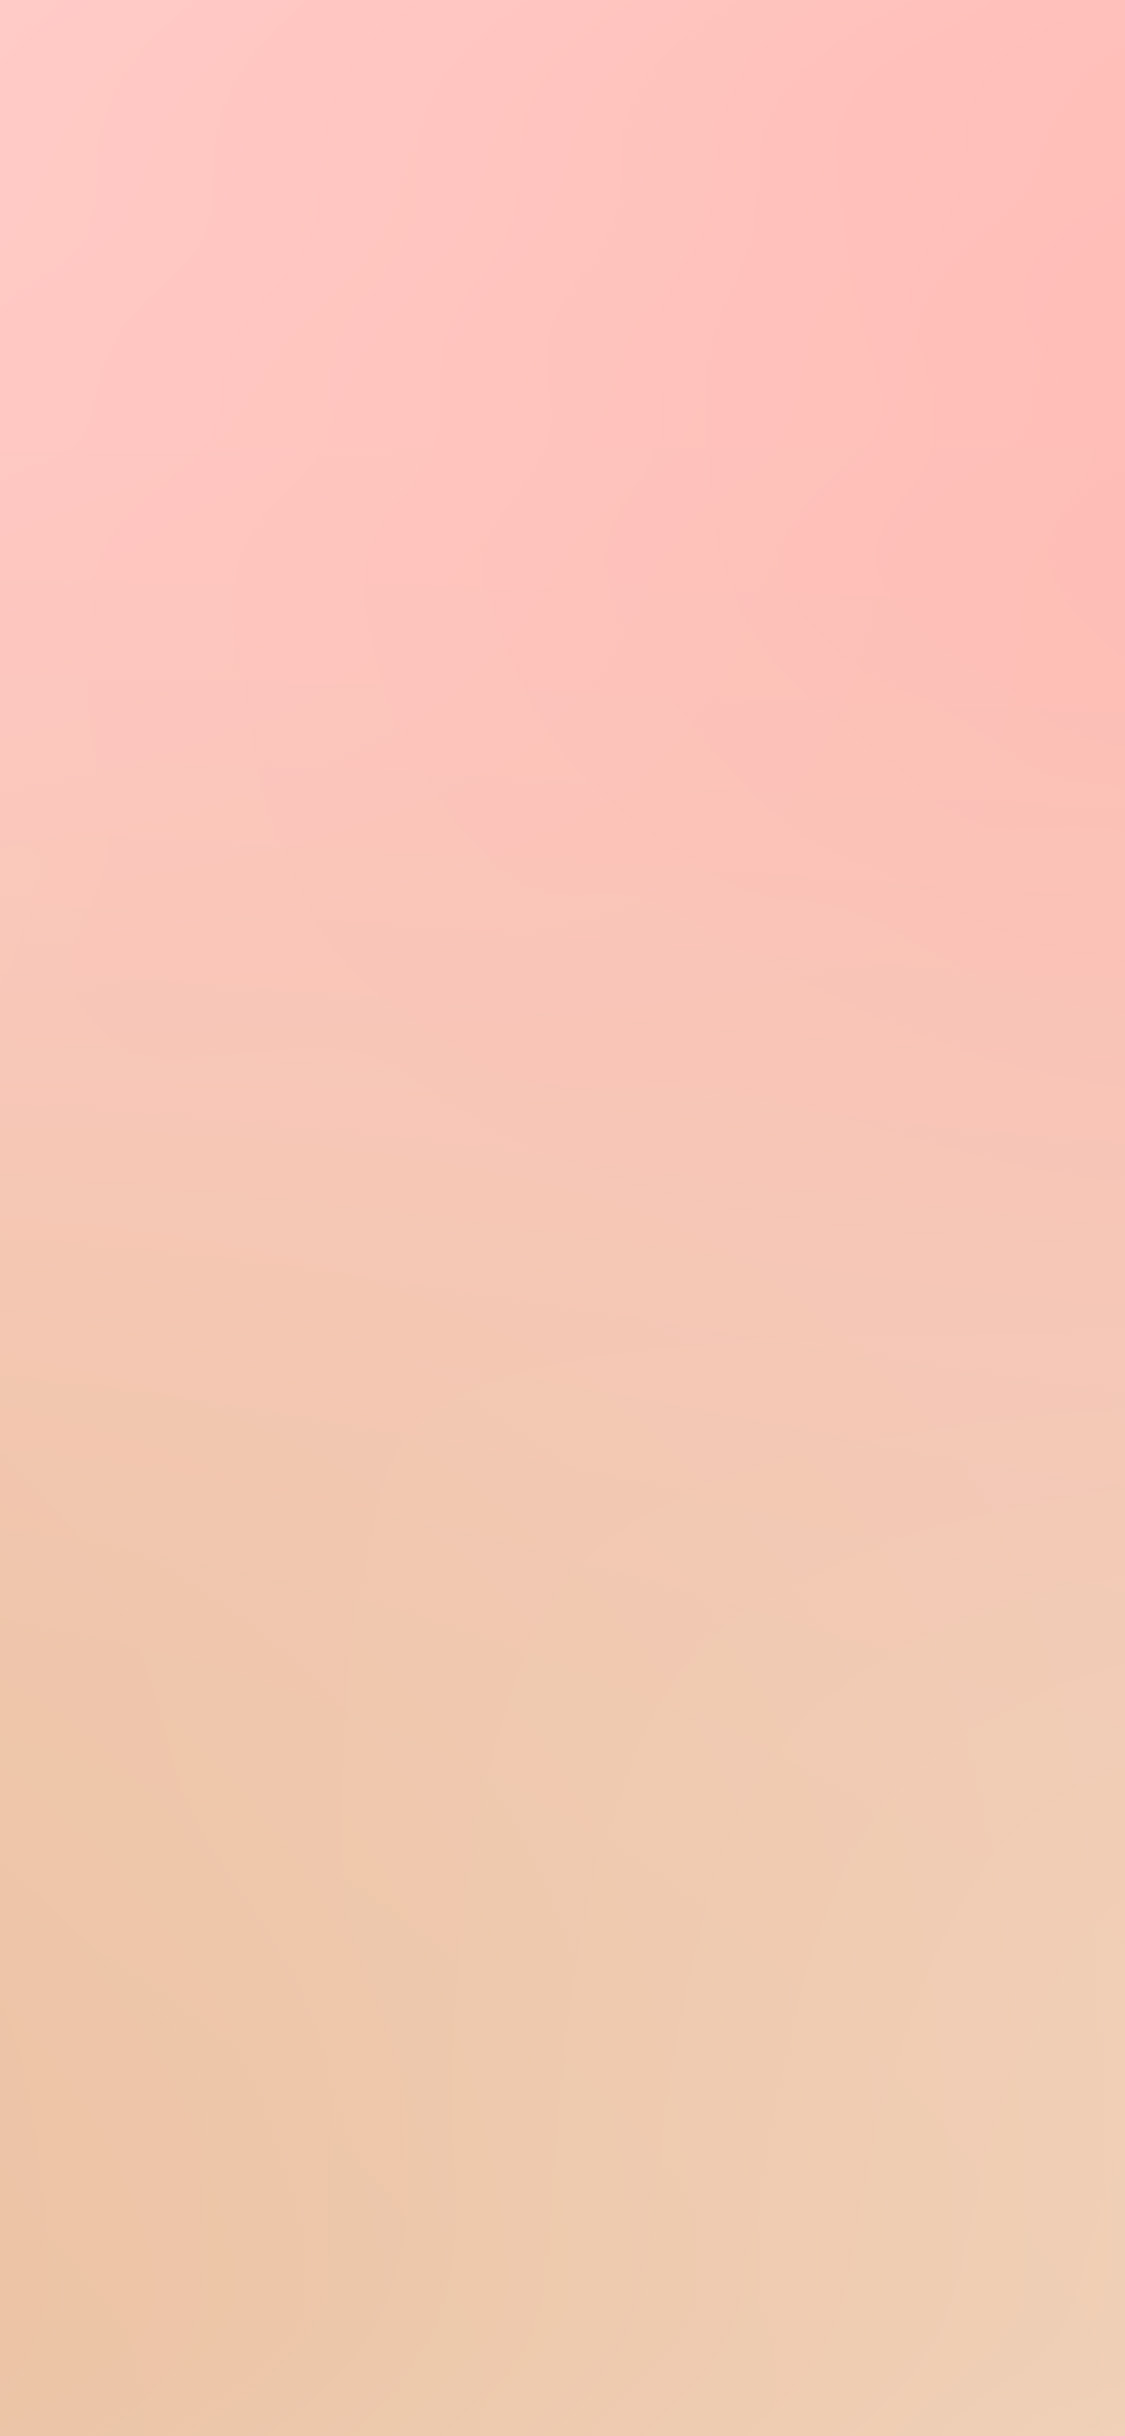 iPhonexpapers.com-Apple-iPhone-wallpaper-sn14-peach-pink-blur-gradation